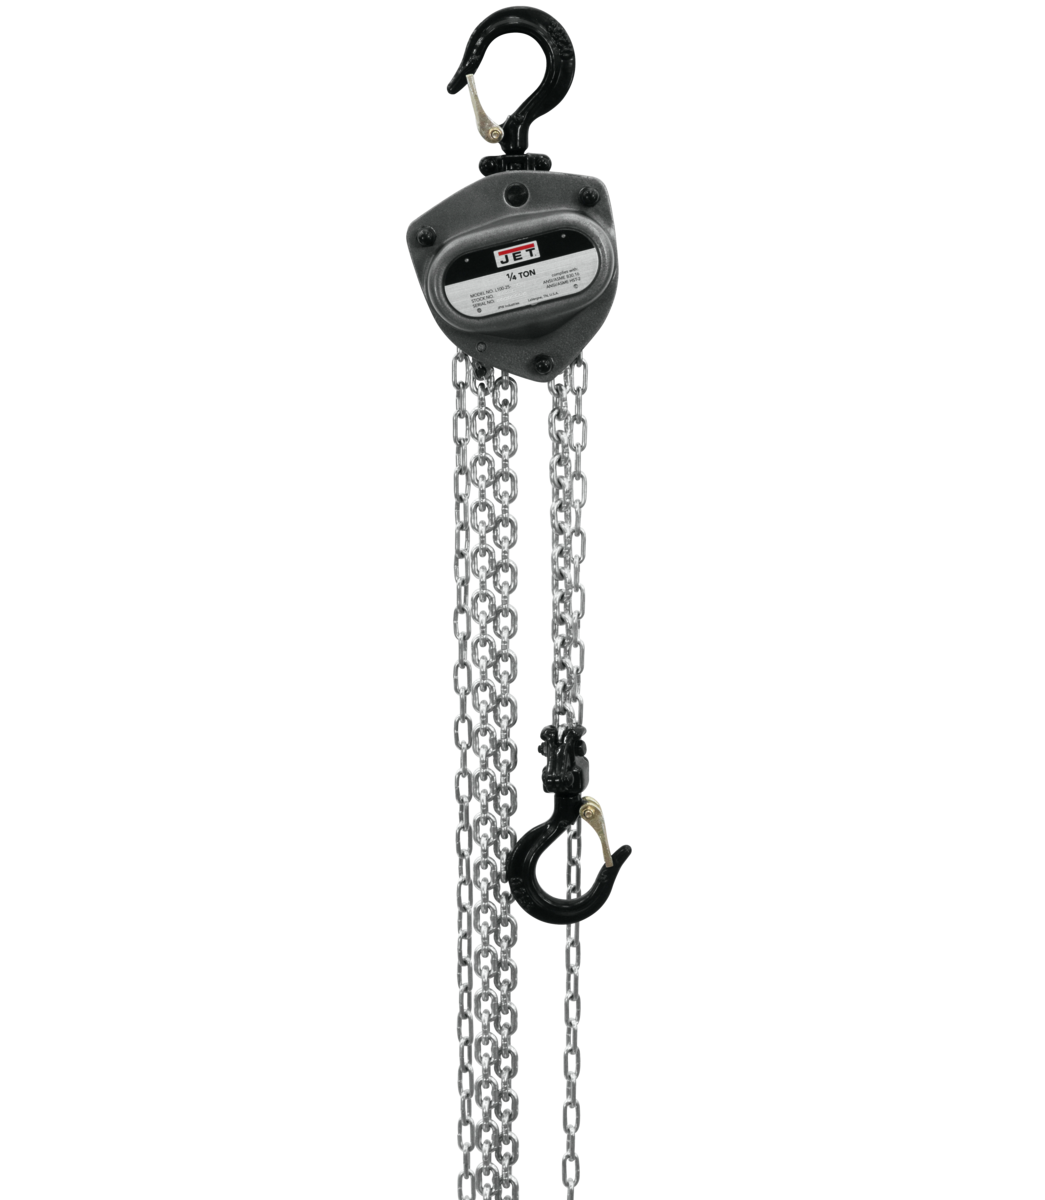 L-100-250WO-20, 1/4-Ton Hand Chain Hoist With 20' Lift & Overload Protection